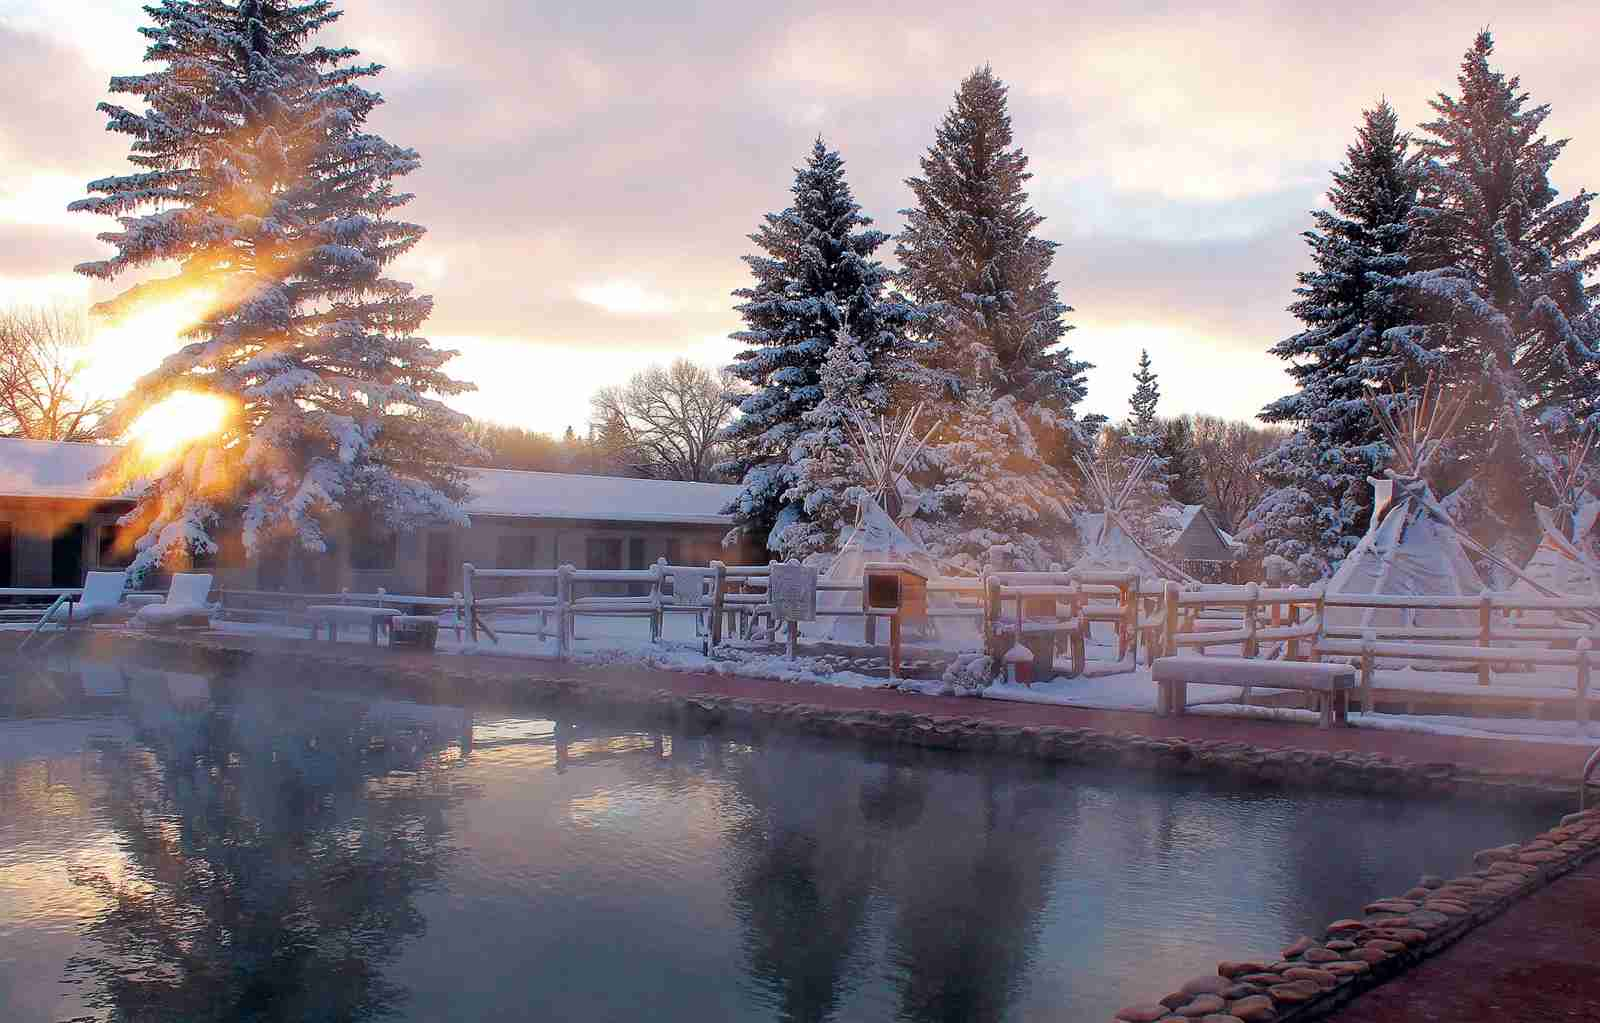 Saratoga Hot Springs Resort. (Photo courtesy of TravelWyoming.com)